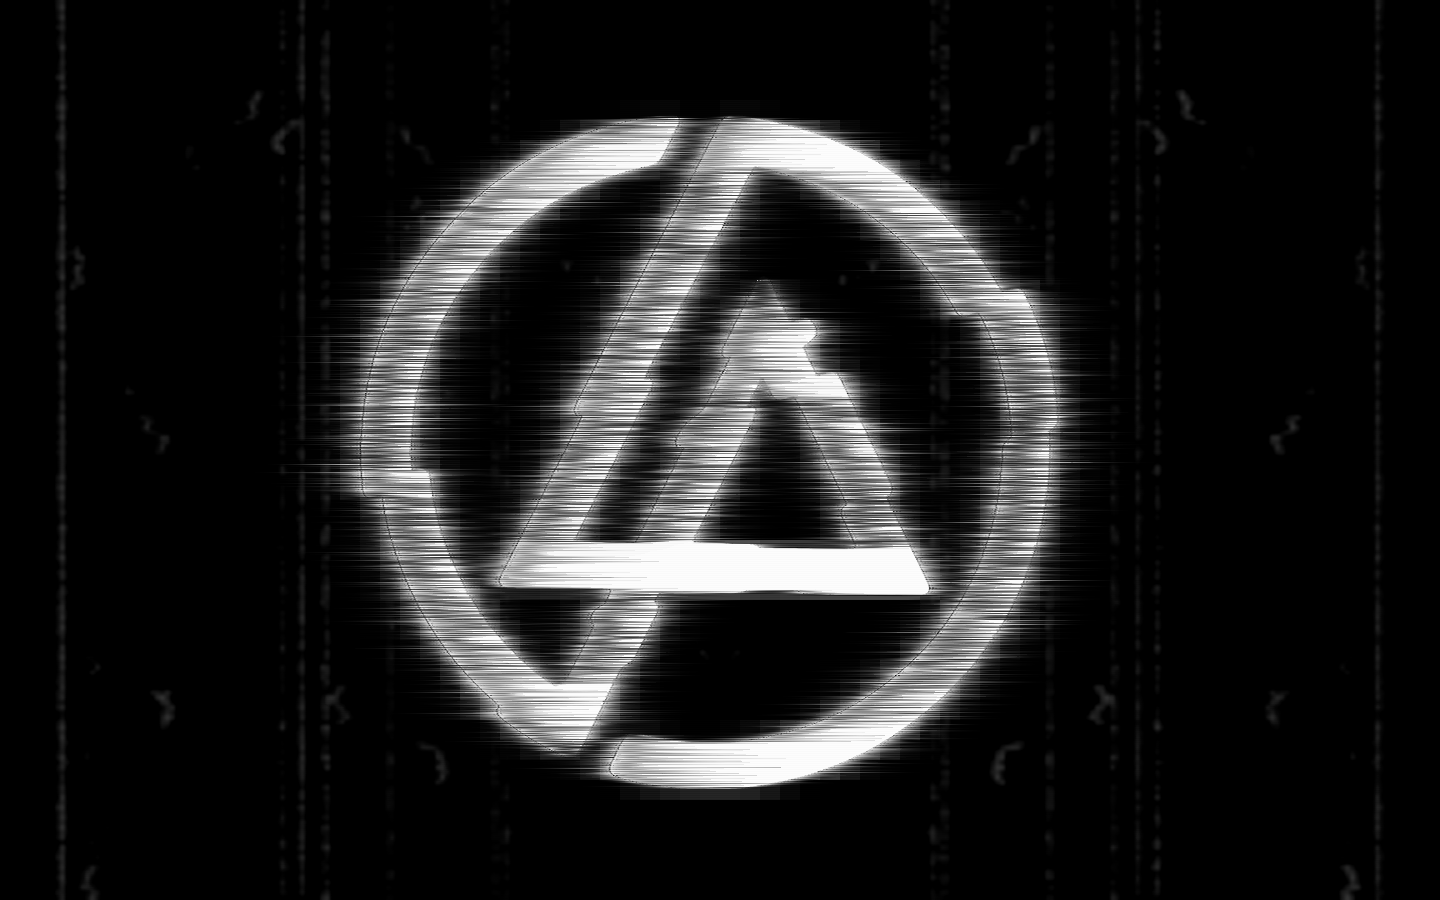 Wallpaper Collection For Your Computer and Mobile Phones: 10 New Best Linkin Park Wallpapers